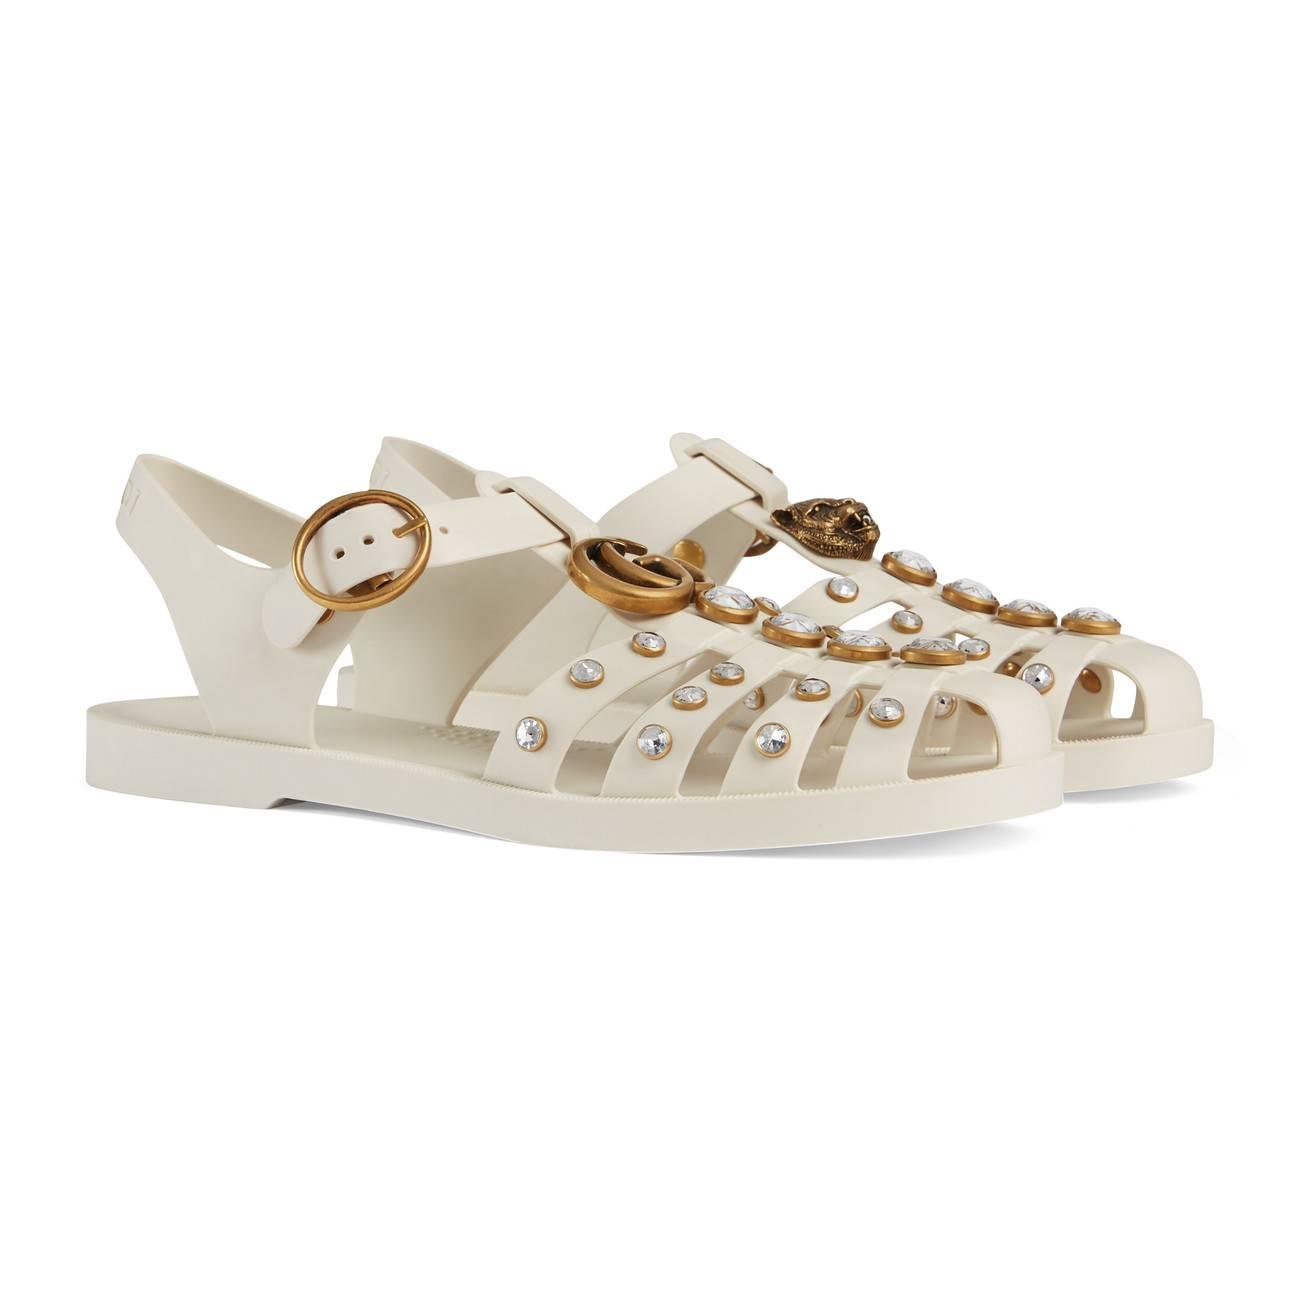 93e74fc3cae4 Gucci - White Rubber Sandal With Crystals - Lyst. View fullscreen